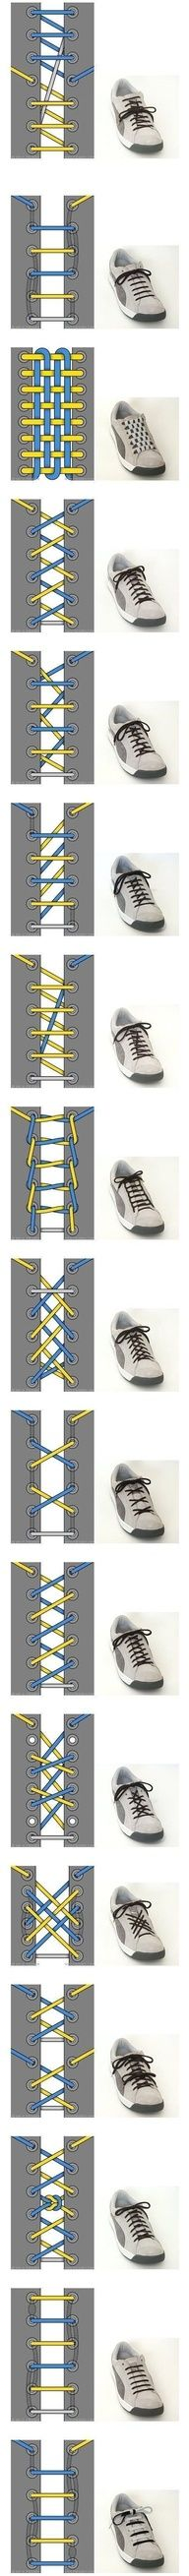 Cool ways to tie a shoe